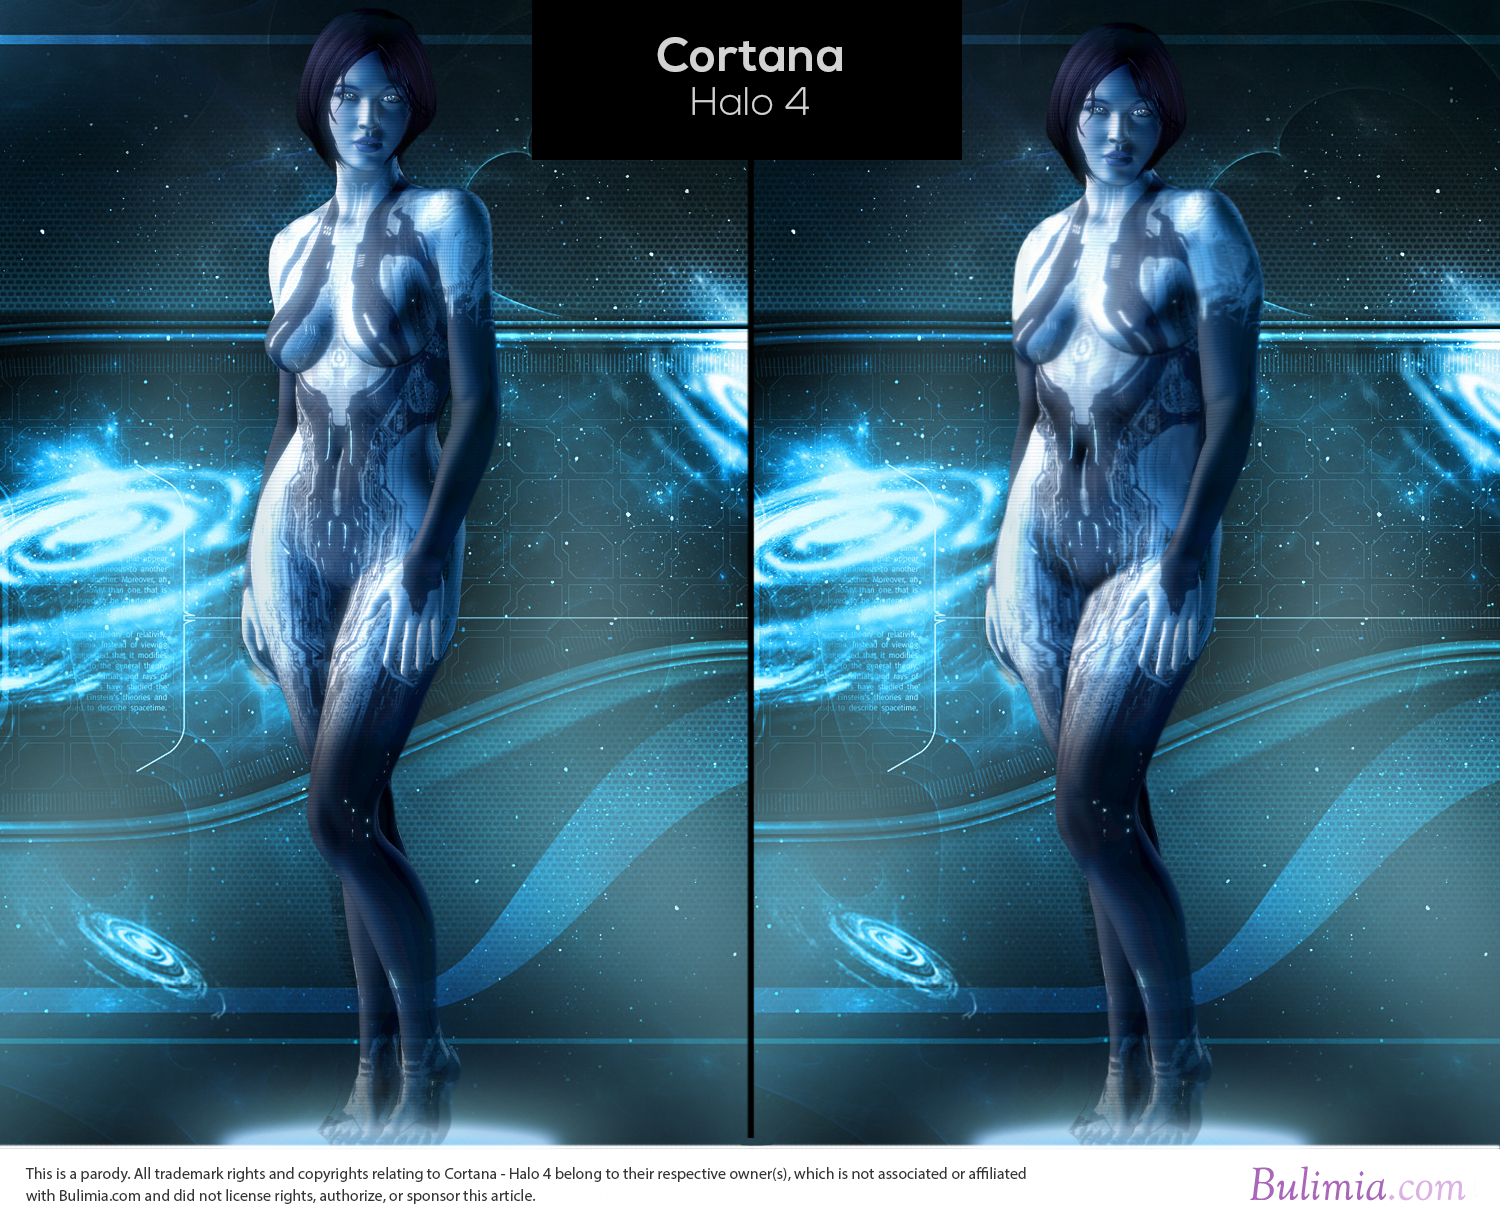 http://www.bulimia.com/examine/video-games-realistic-body-types/